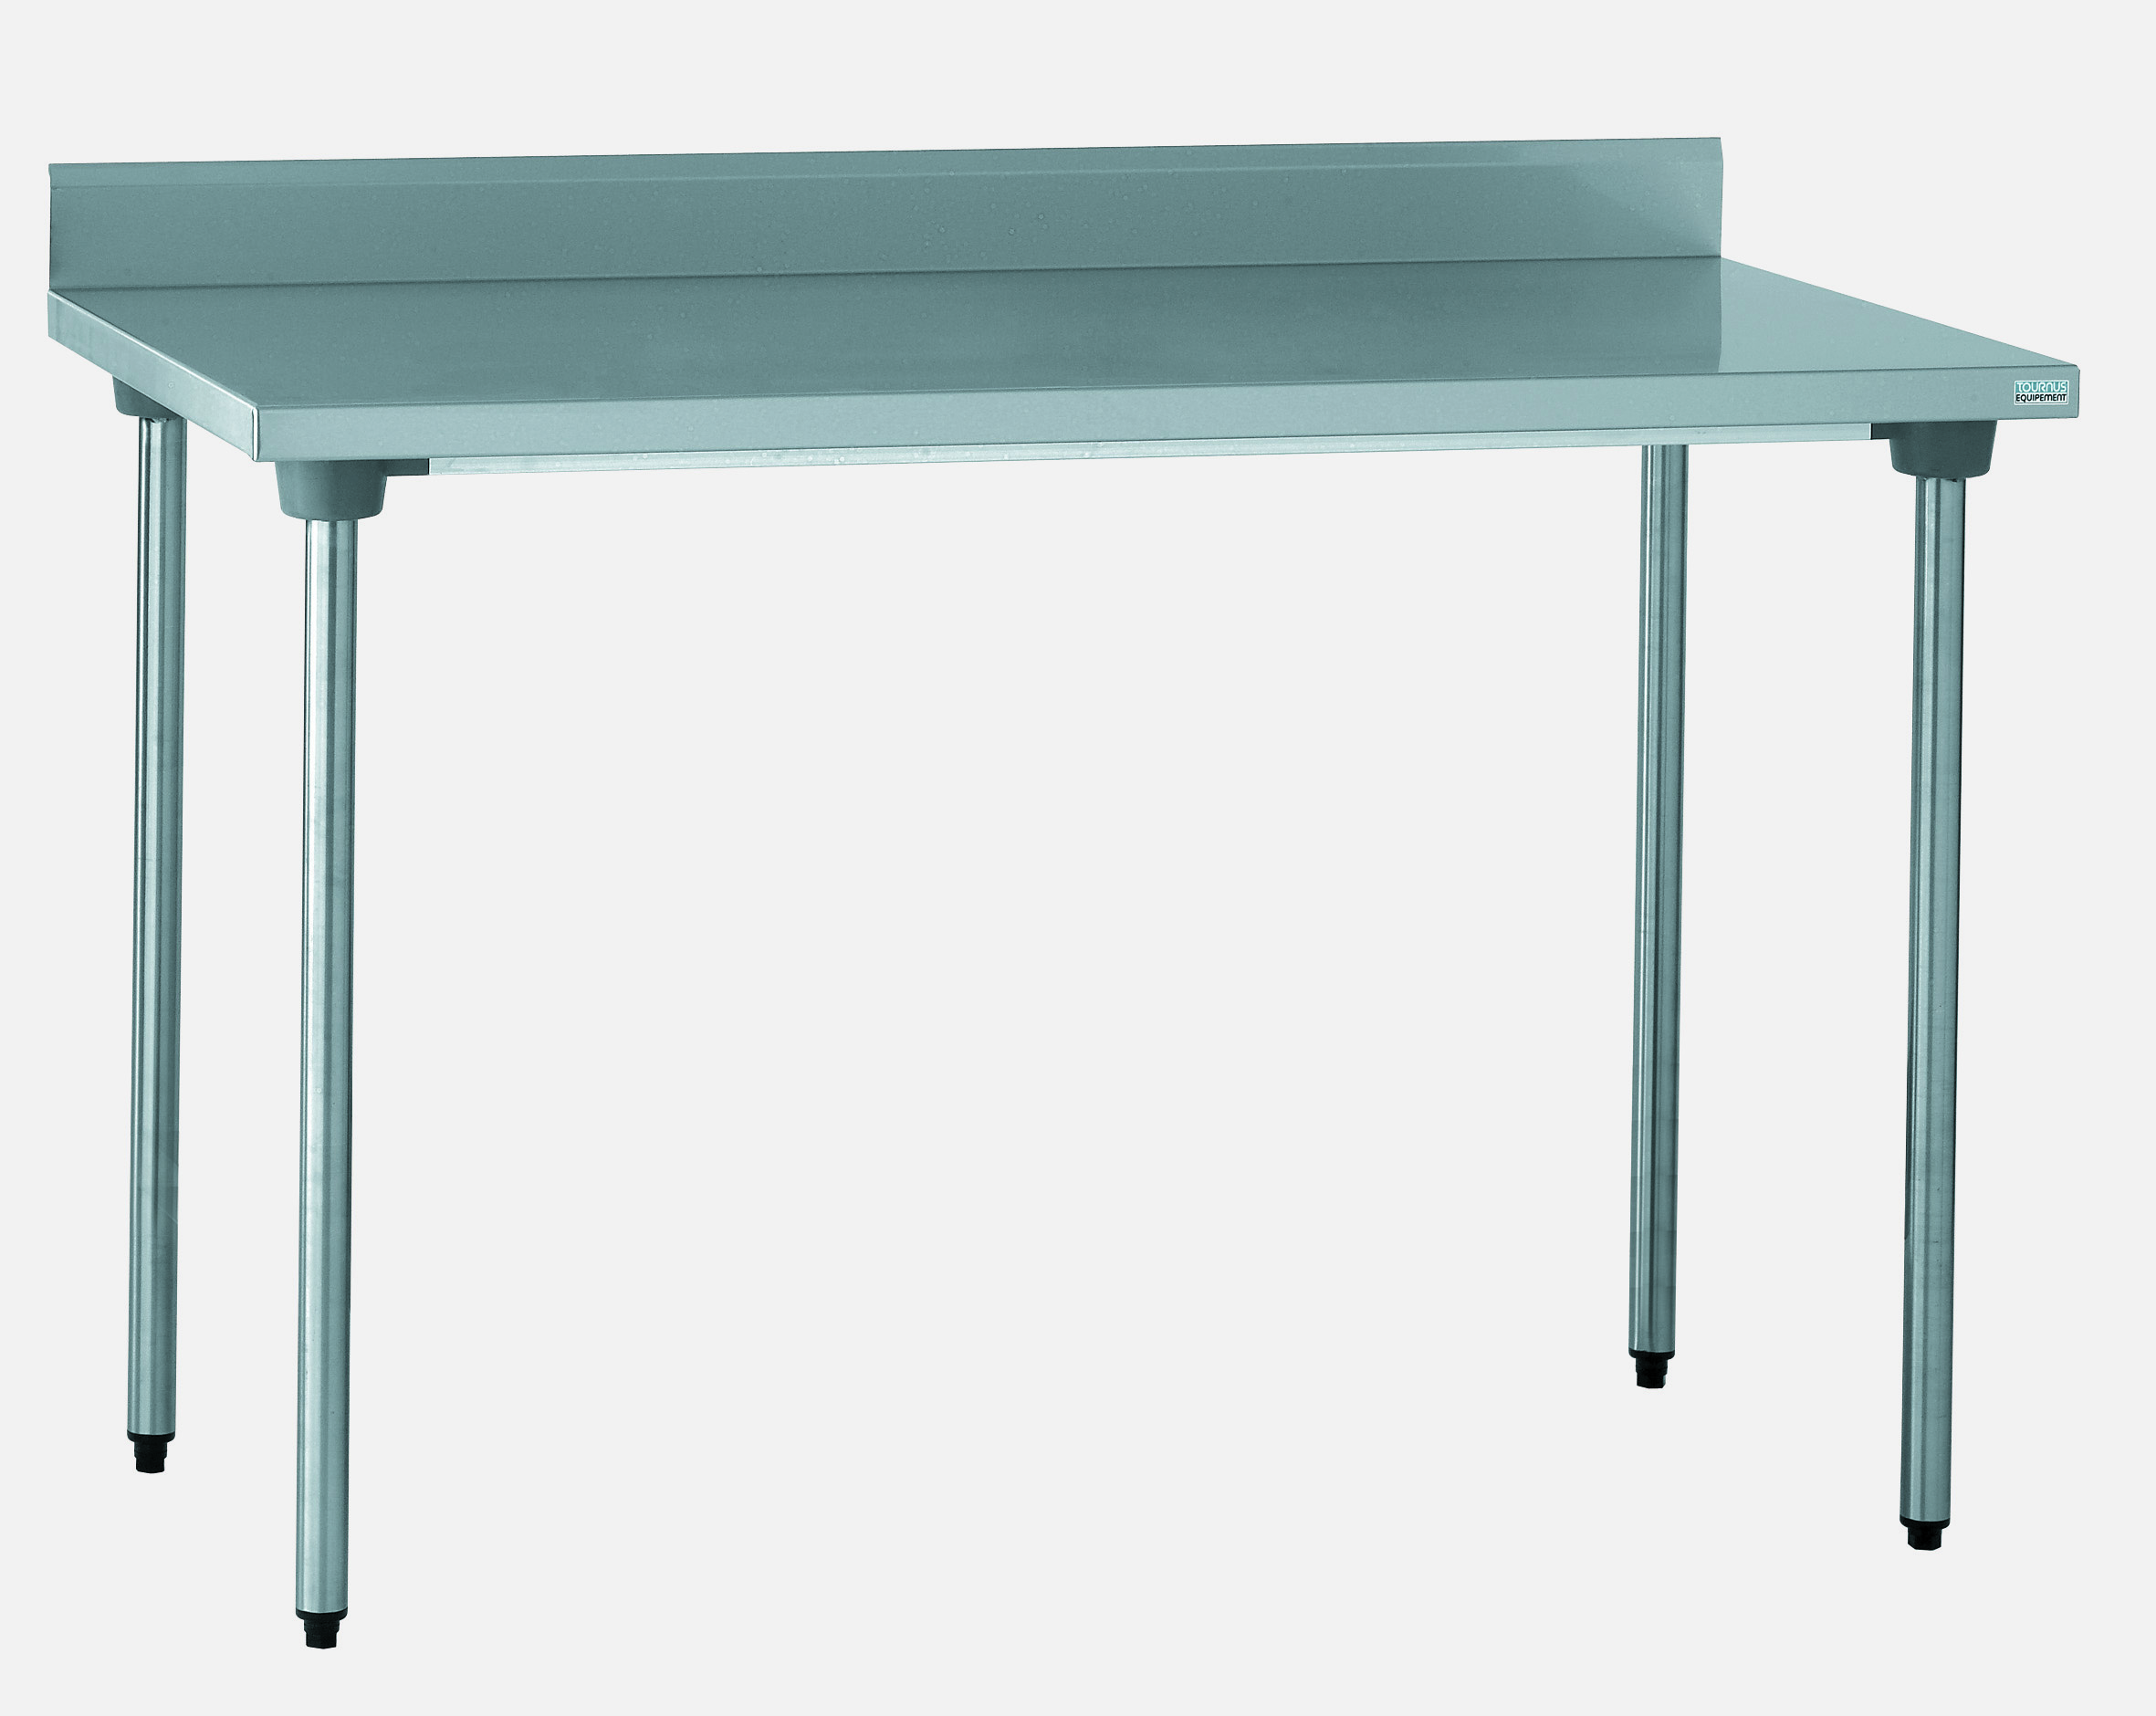 TABLE CHR ADOSSEE 700X1600